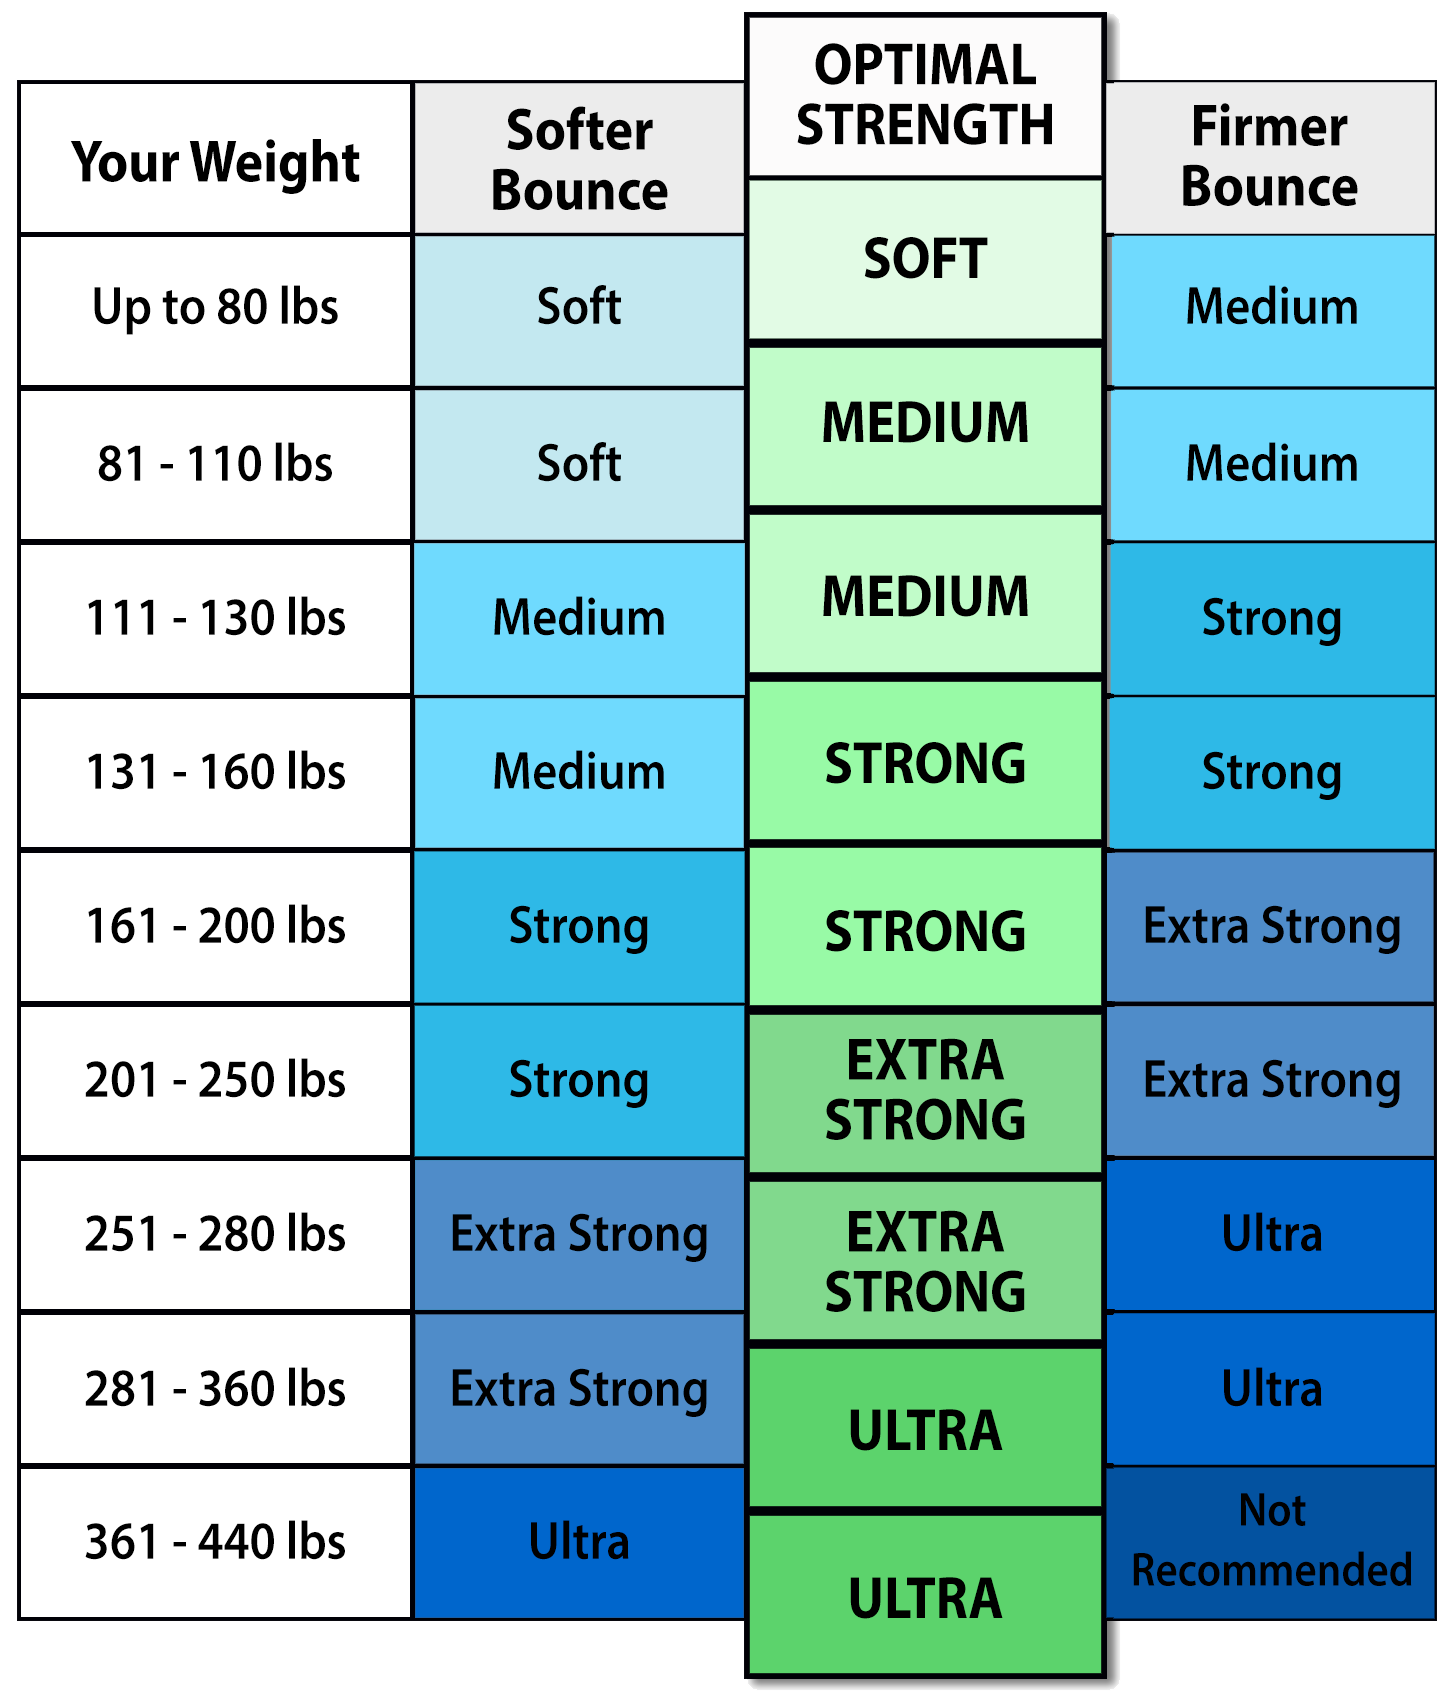 With this table you can easily determine your ideal bungee strength in a few moments